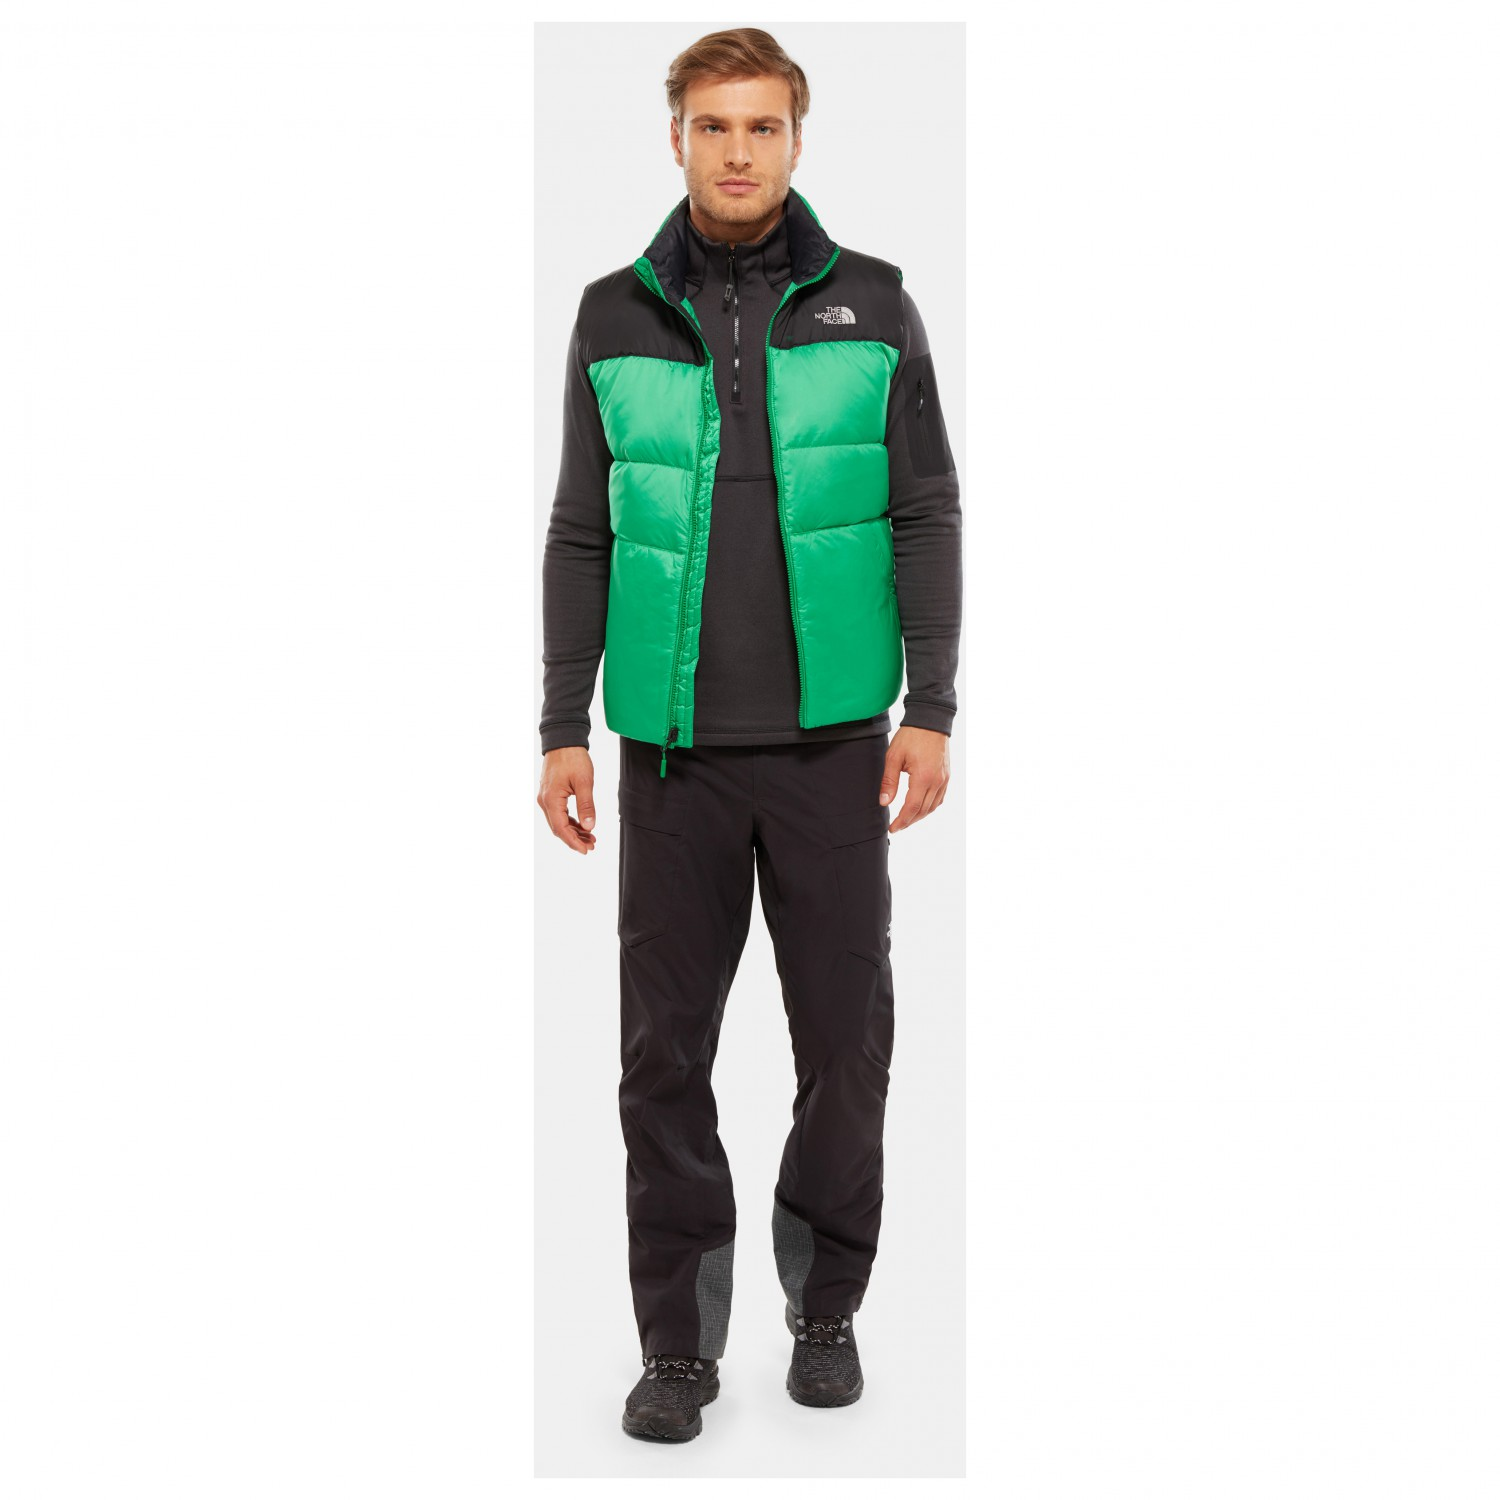 c6af181185b The North Face Nuptse III Vest - Doudoune sans manches Homme ...